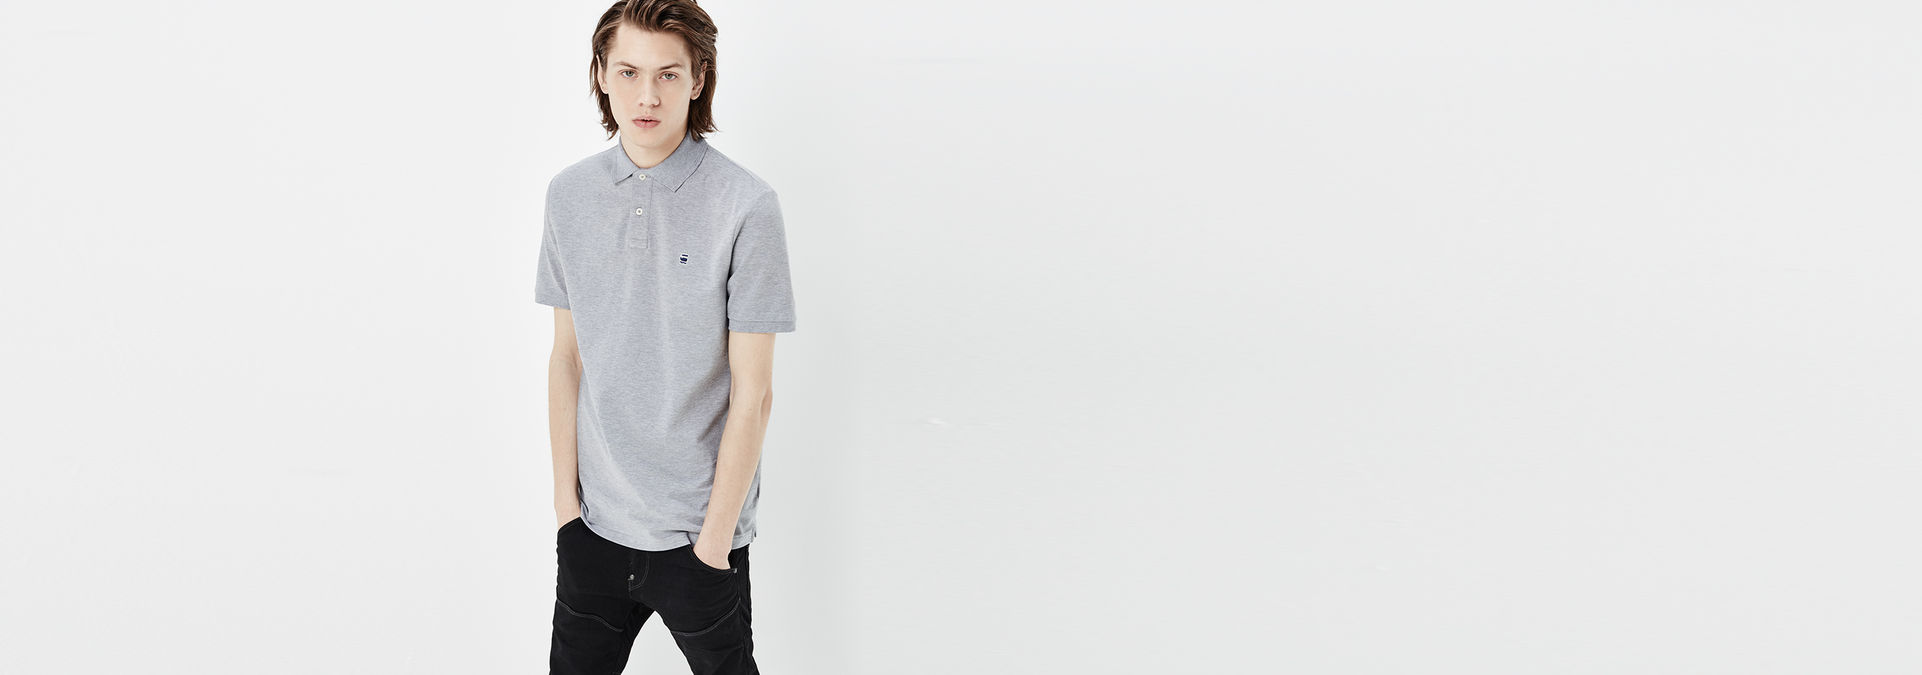 Dunda Polo T shirt | Grey Heather | Men | G Star RAW®